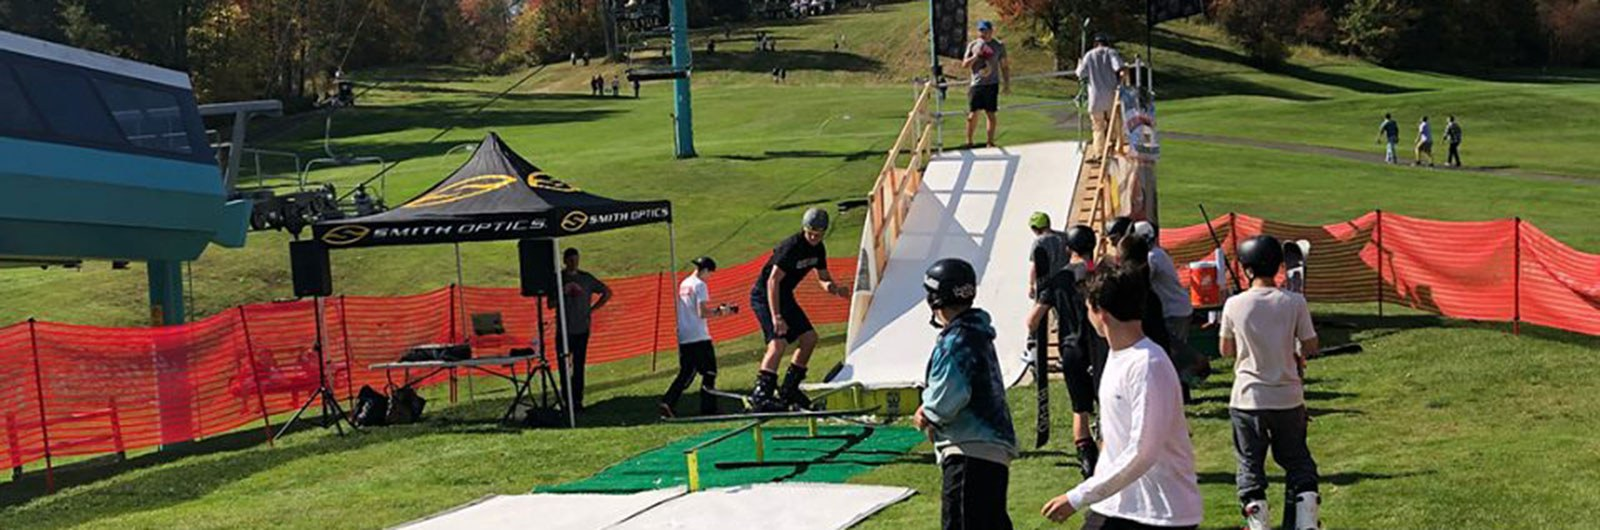 Fall Rail Jam structure with competitors